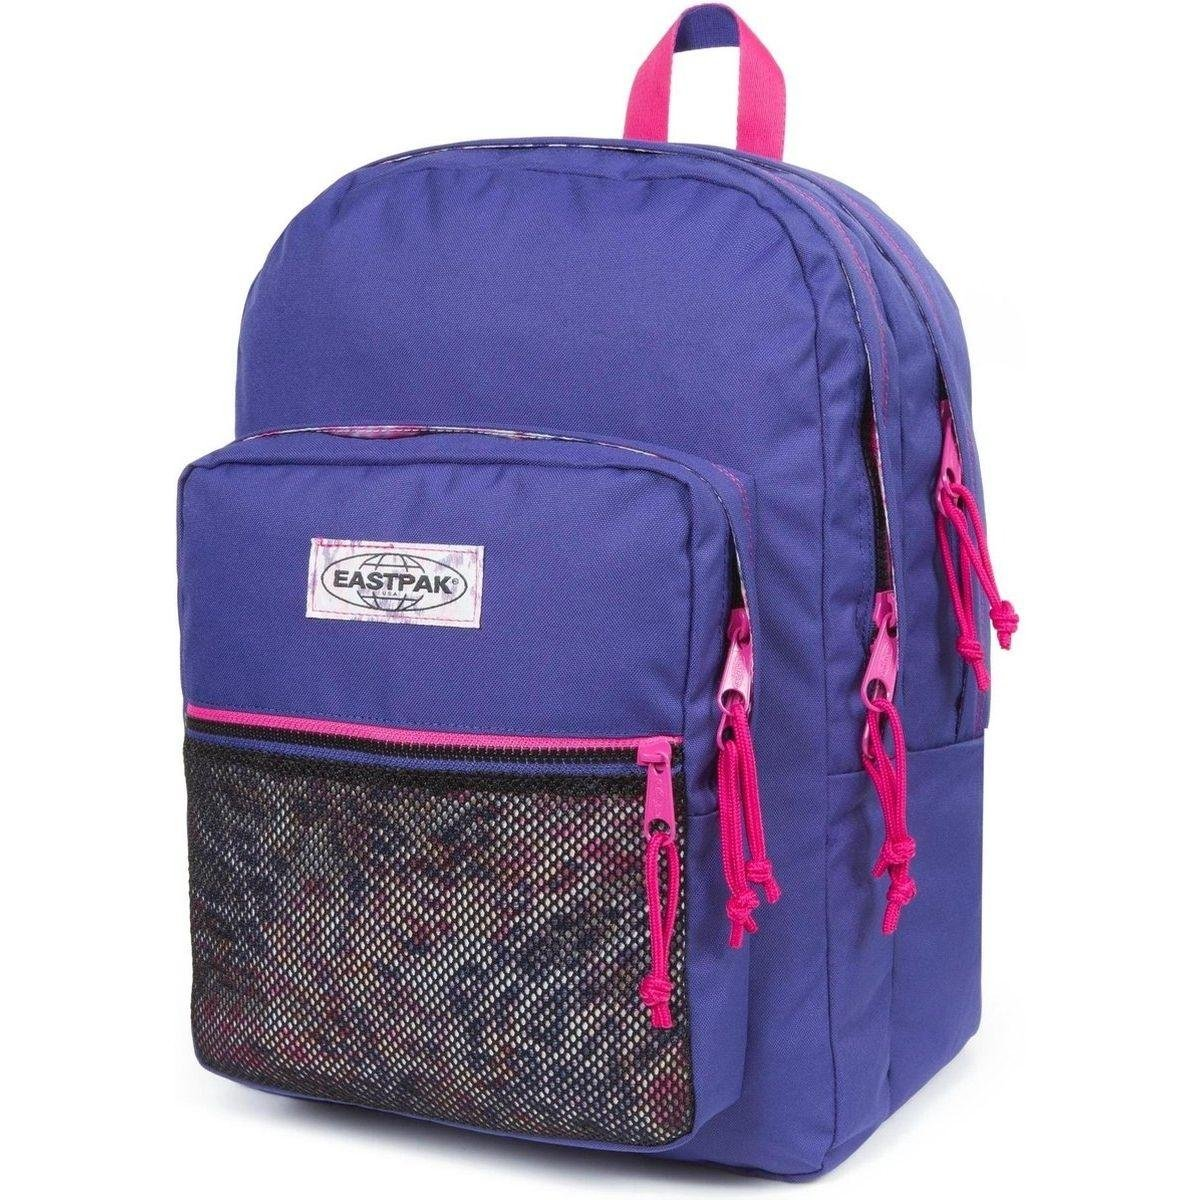 Zaino Eastpak Pinnacle...